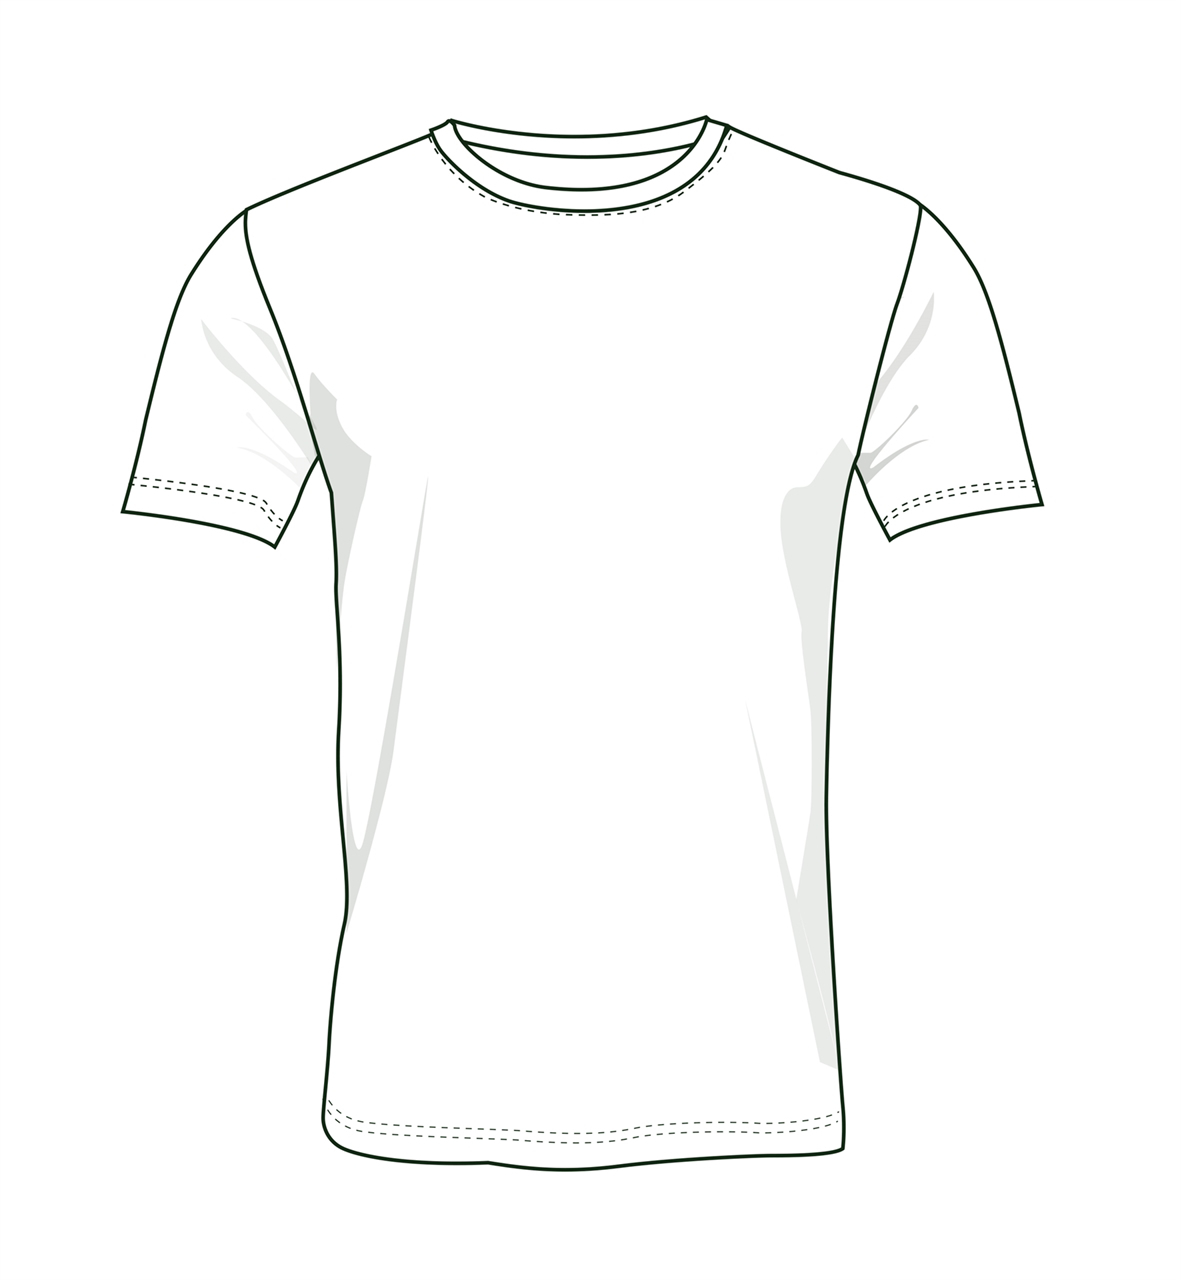 Picture of T-time t-shirt 0510 Mint